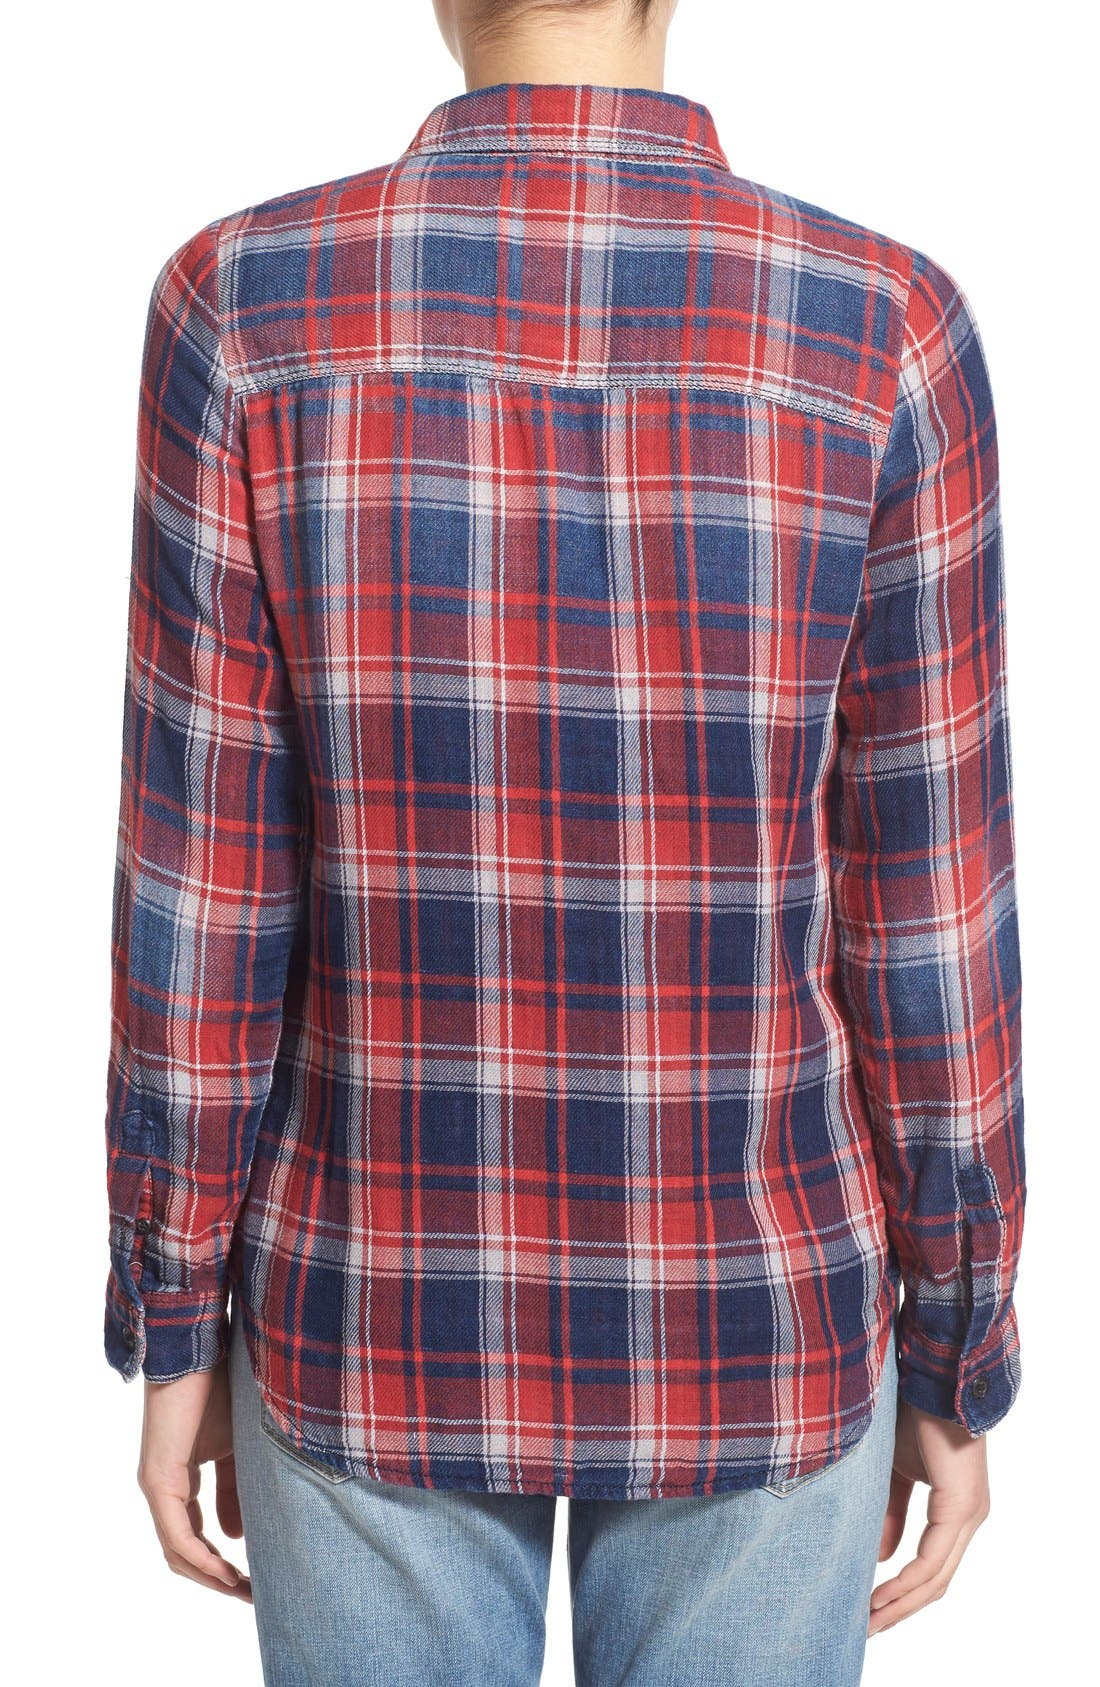 Treasure&Bond Classic Fit Plaid Shirt,                             Alternate thumbnail 3, color,                             400